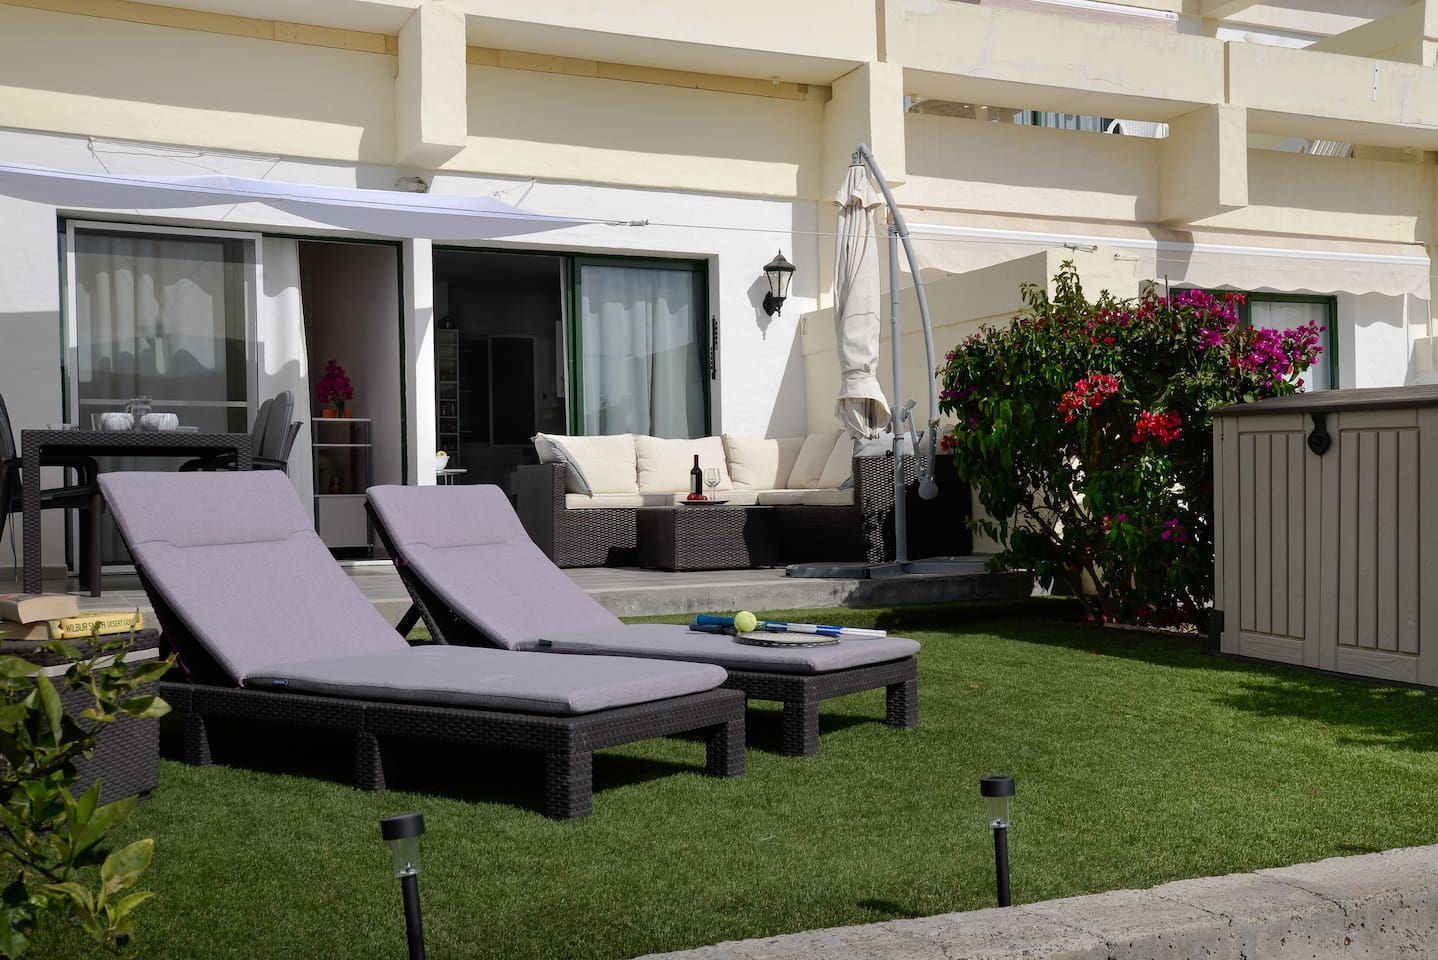 Large terrace where sunbathe, relax & have lunch.